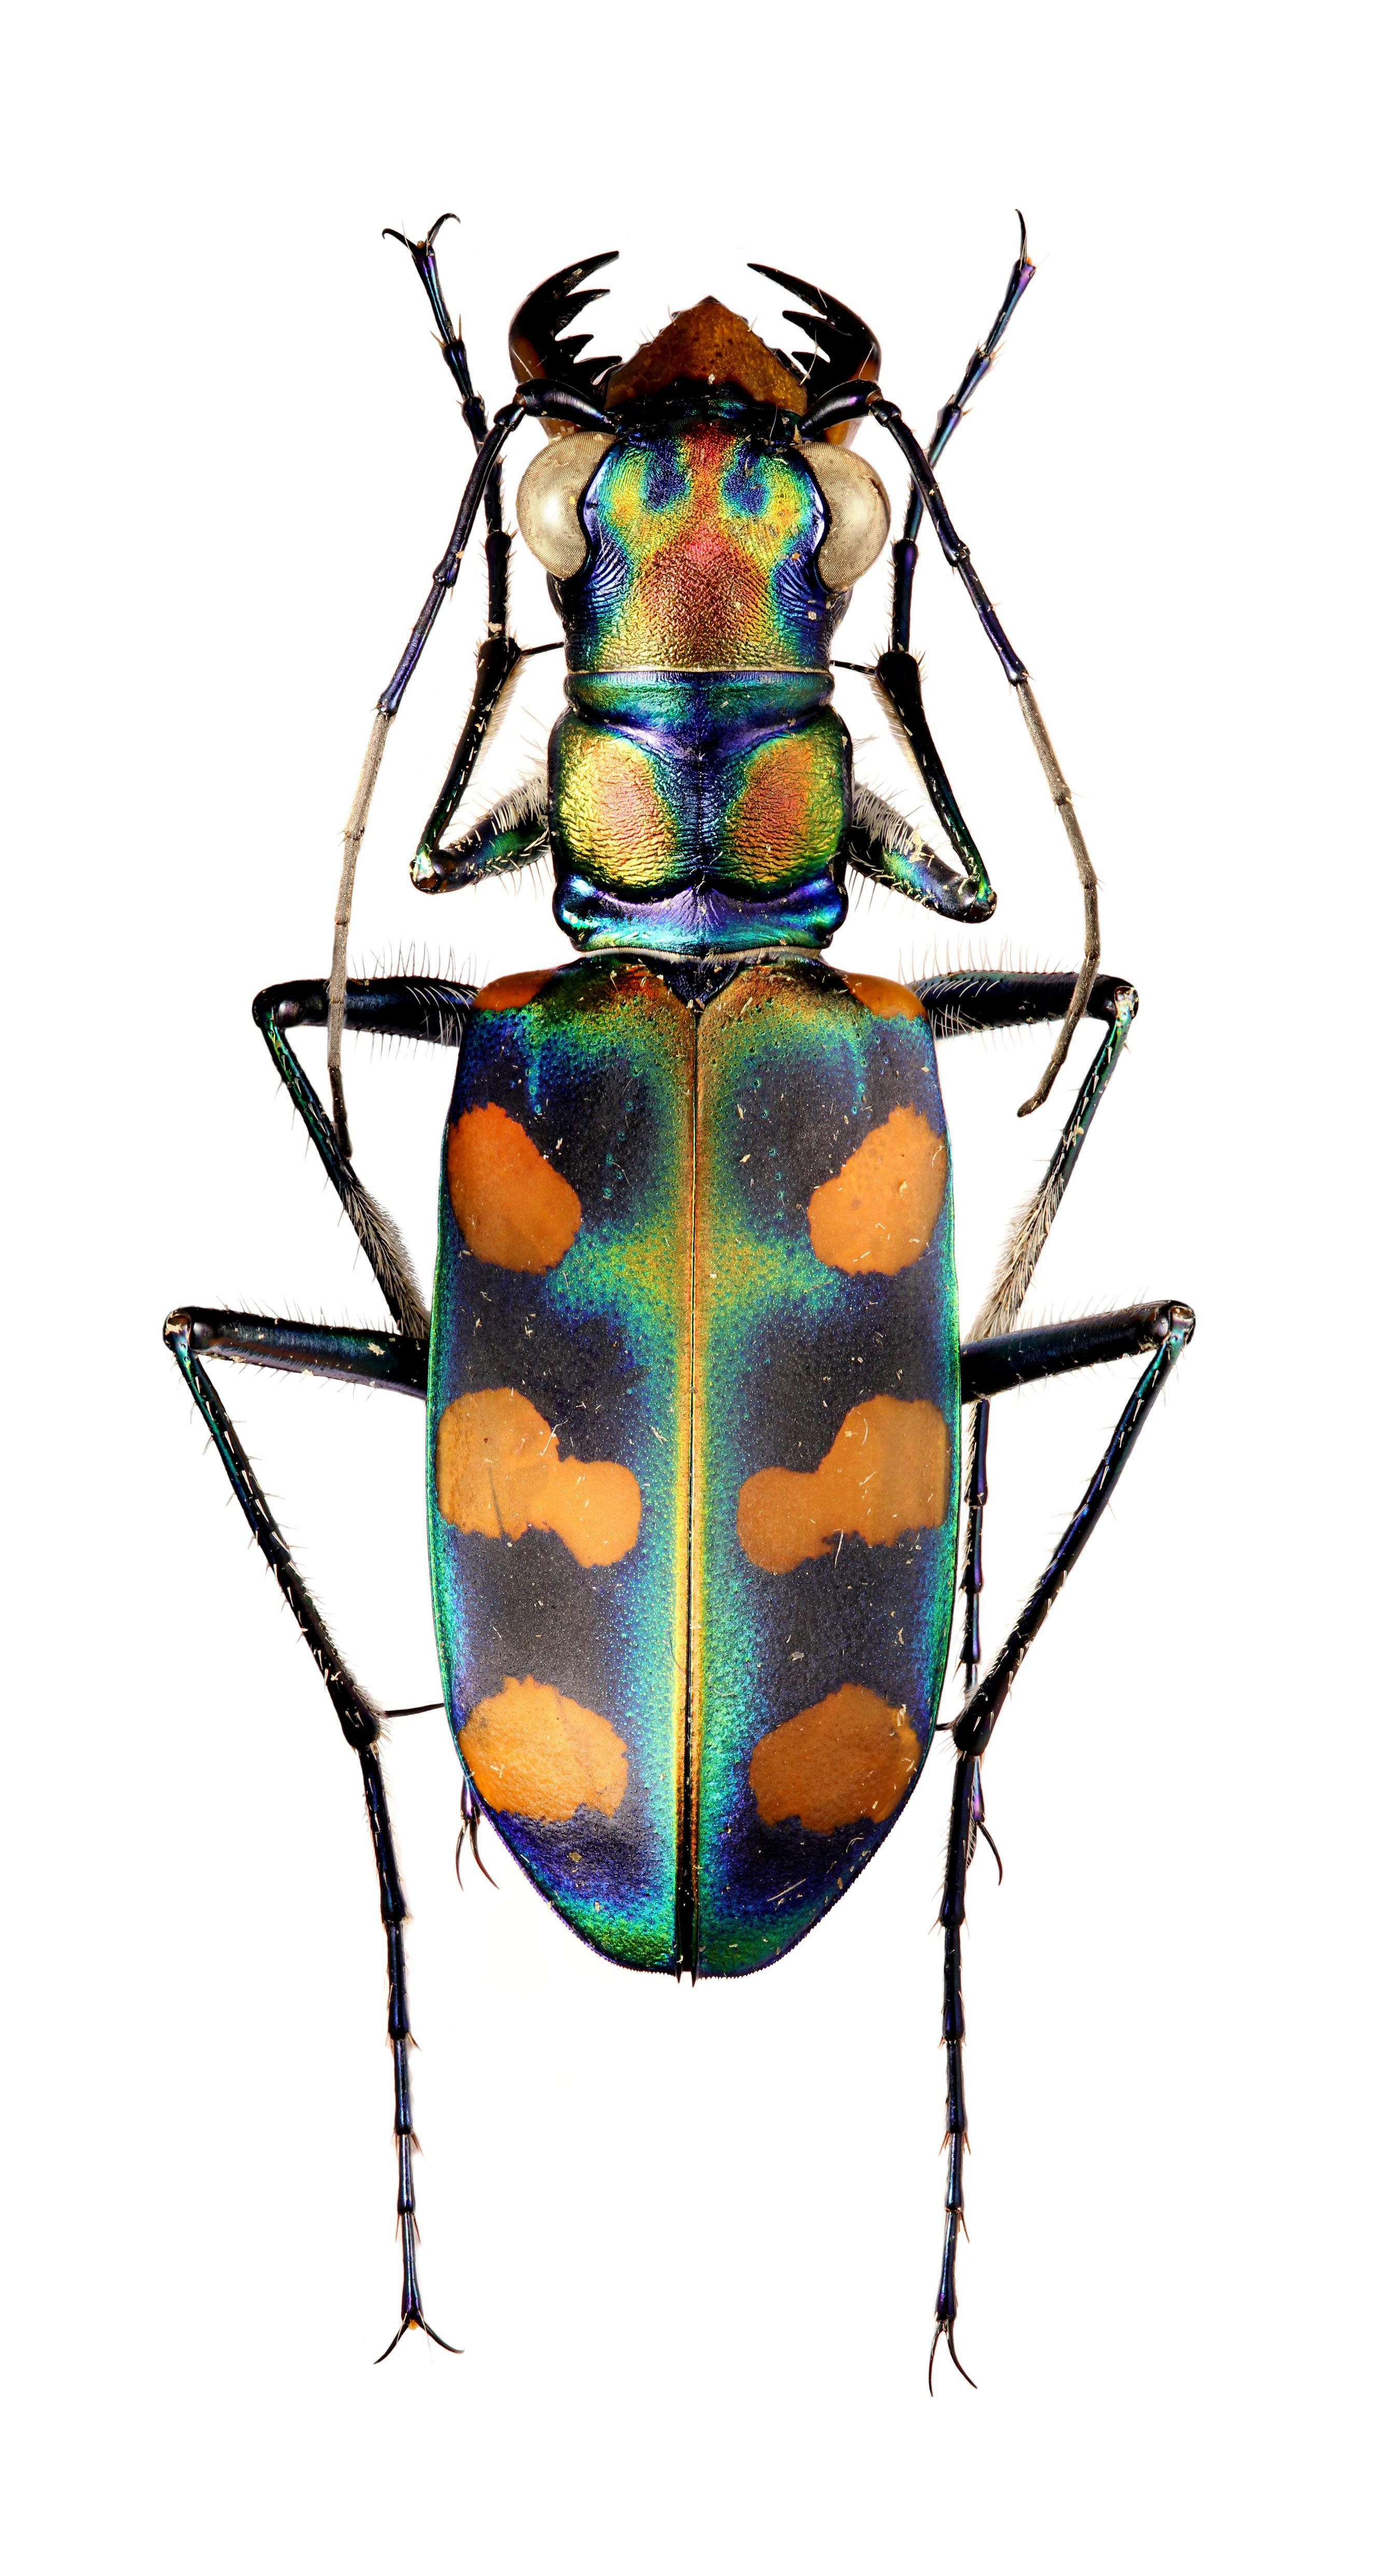 Cicindela calochroa octonotata Beetle insect, Insects